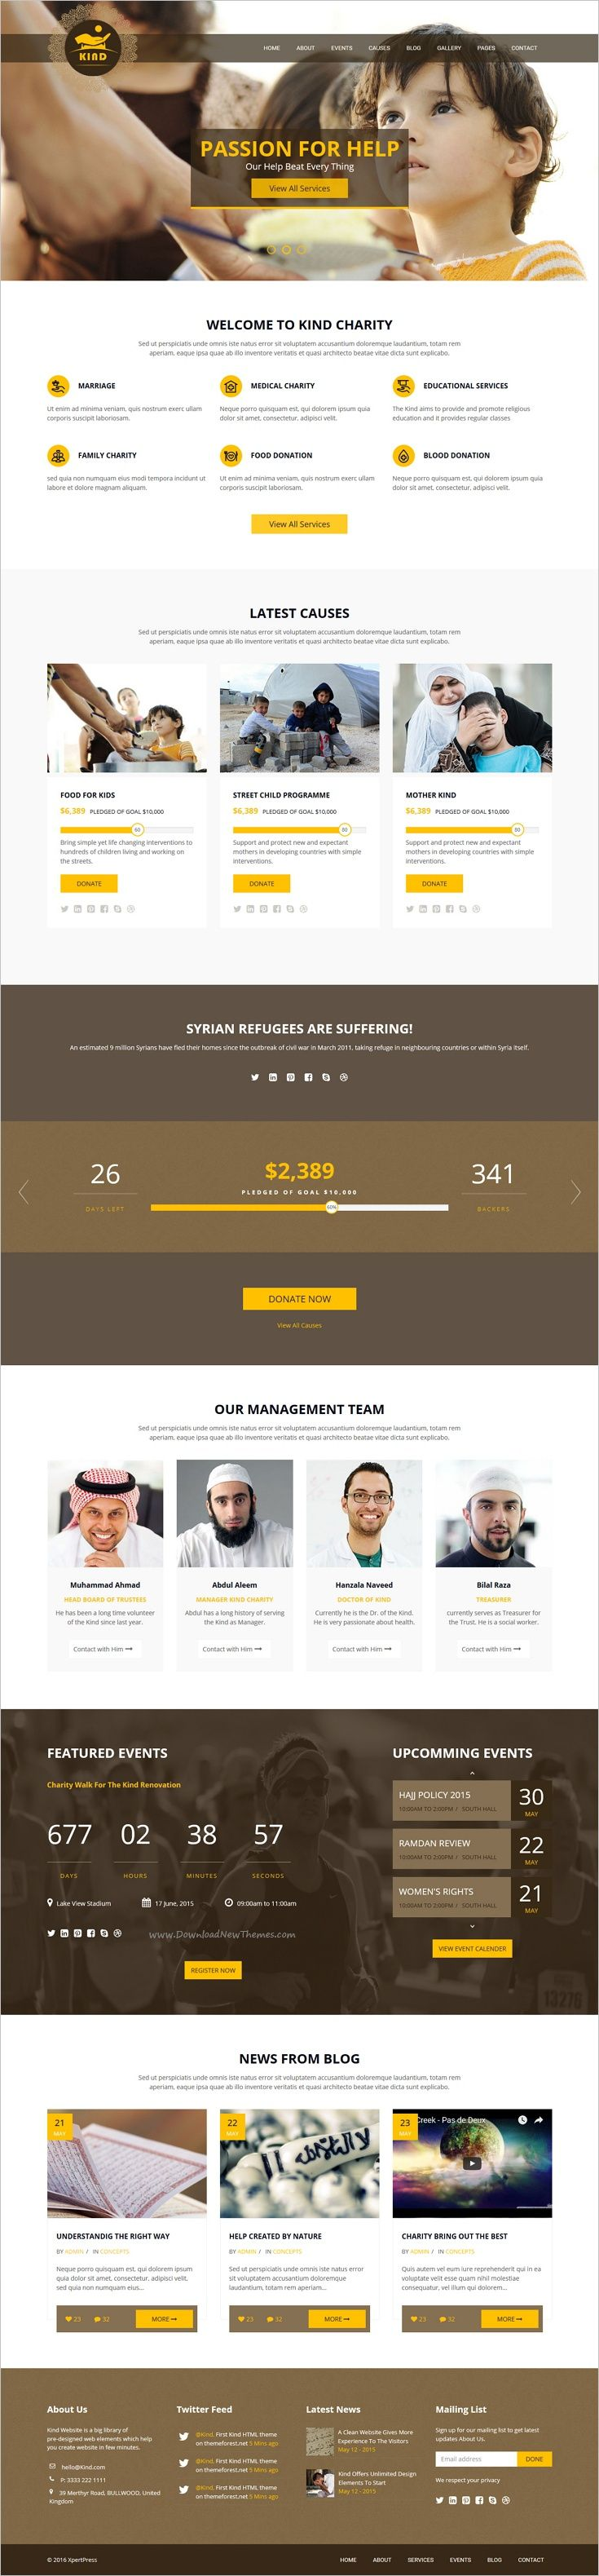 Kind Charity is a unique and decent style #Bootstrap #HTML Template for #Mosque, #Church and NGO Charity websites download now➩ https://themeforest.net/item/kind-charity-html-template-for-mosque-church-and-ngo-charity/18285973?ref=Datasata